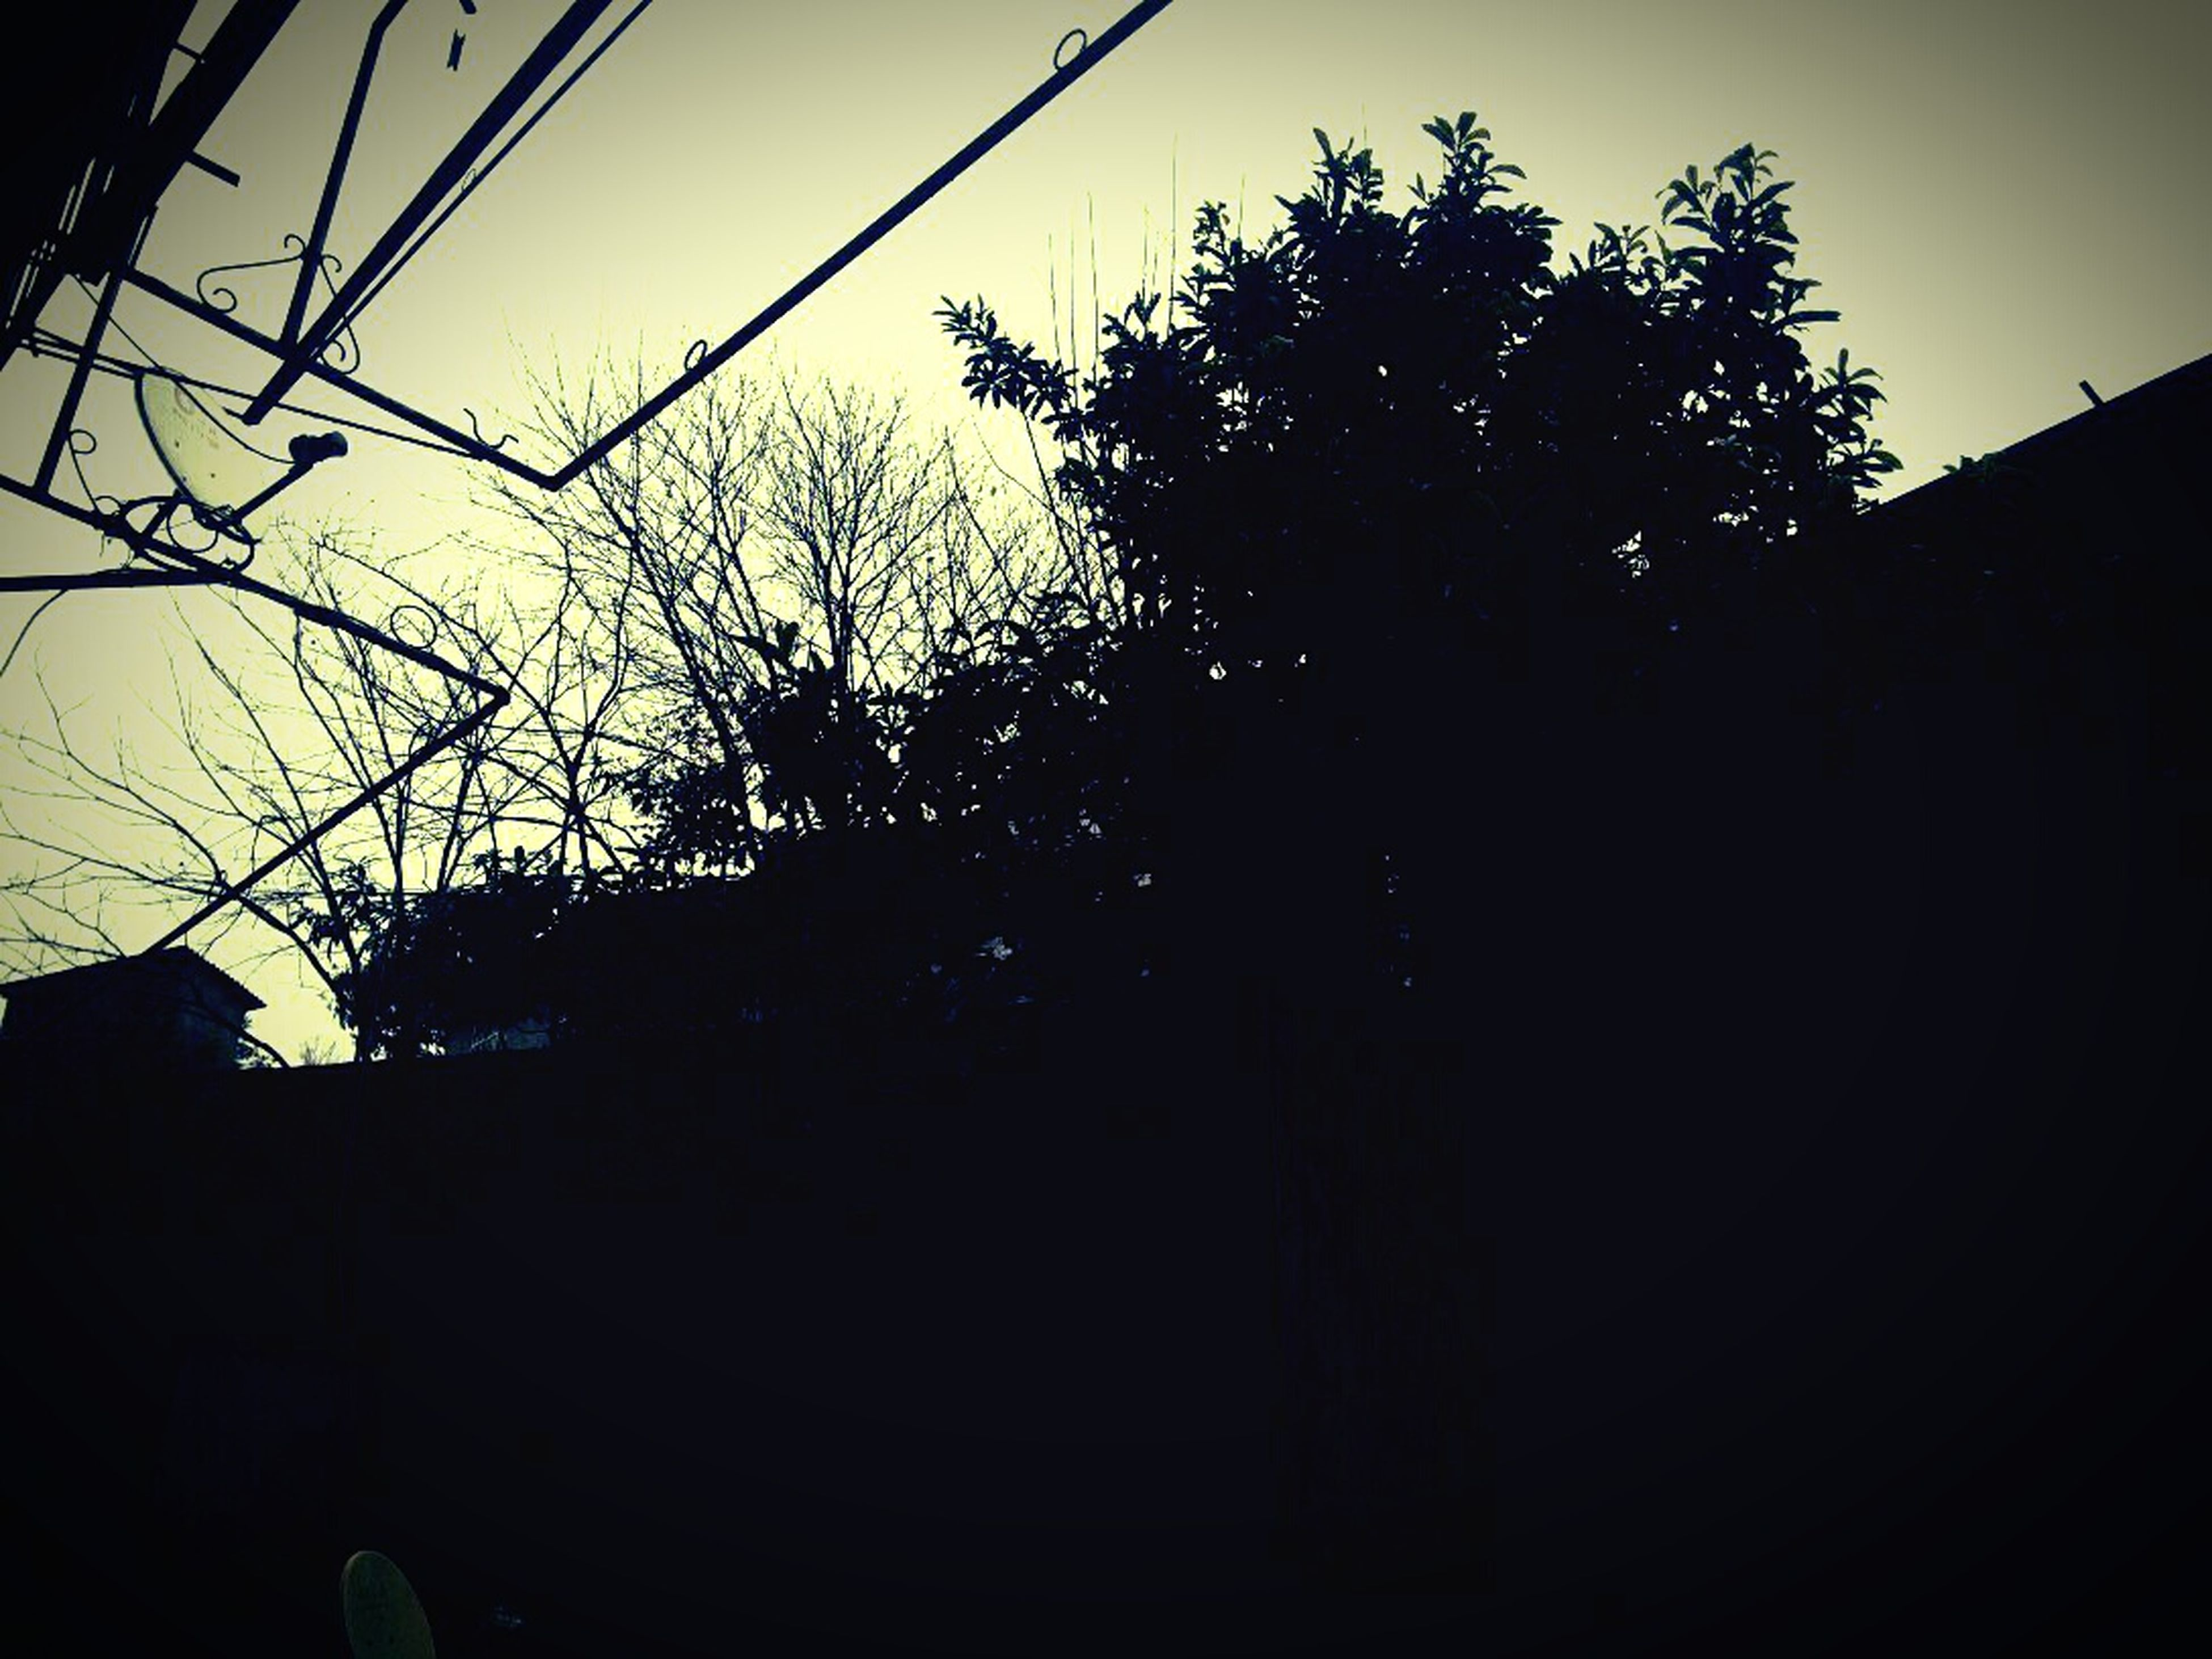 silhouette, tree, low angle view, built structure, architecture, building exterior, sky, power line, clear sky, dusk, electricity pylon, sunset, house, cable, outdoors, dark, electricity, no people, building, outline